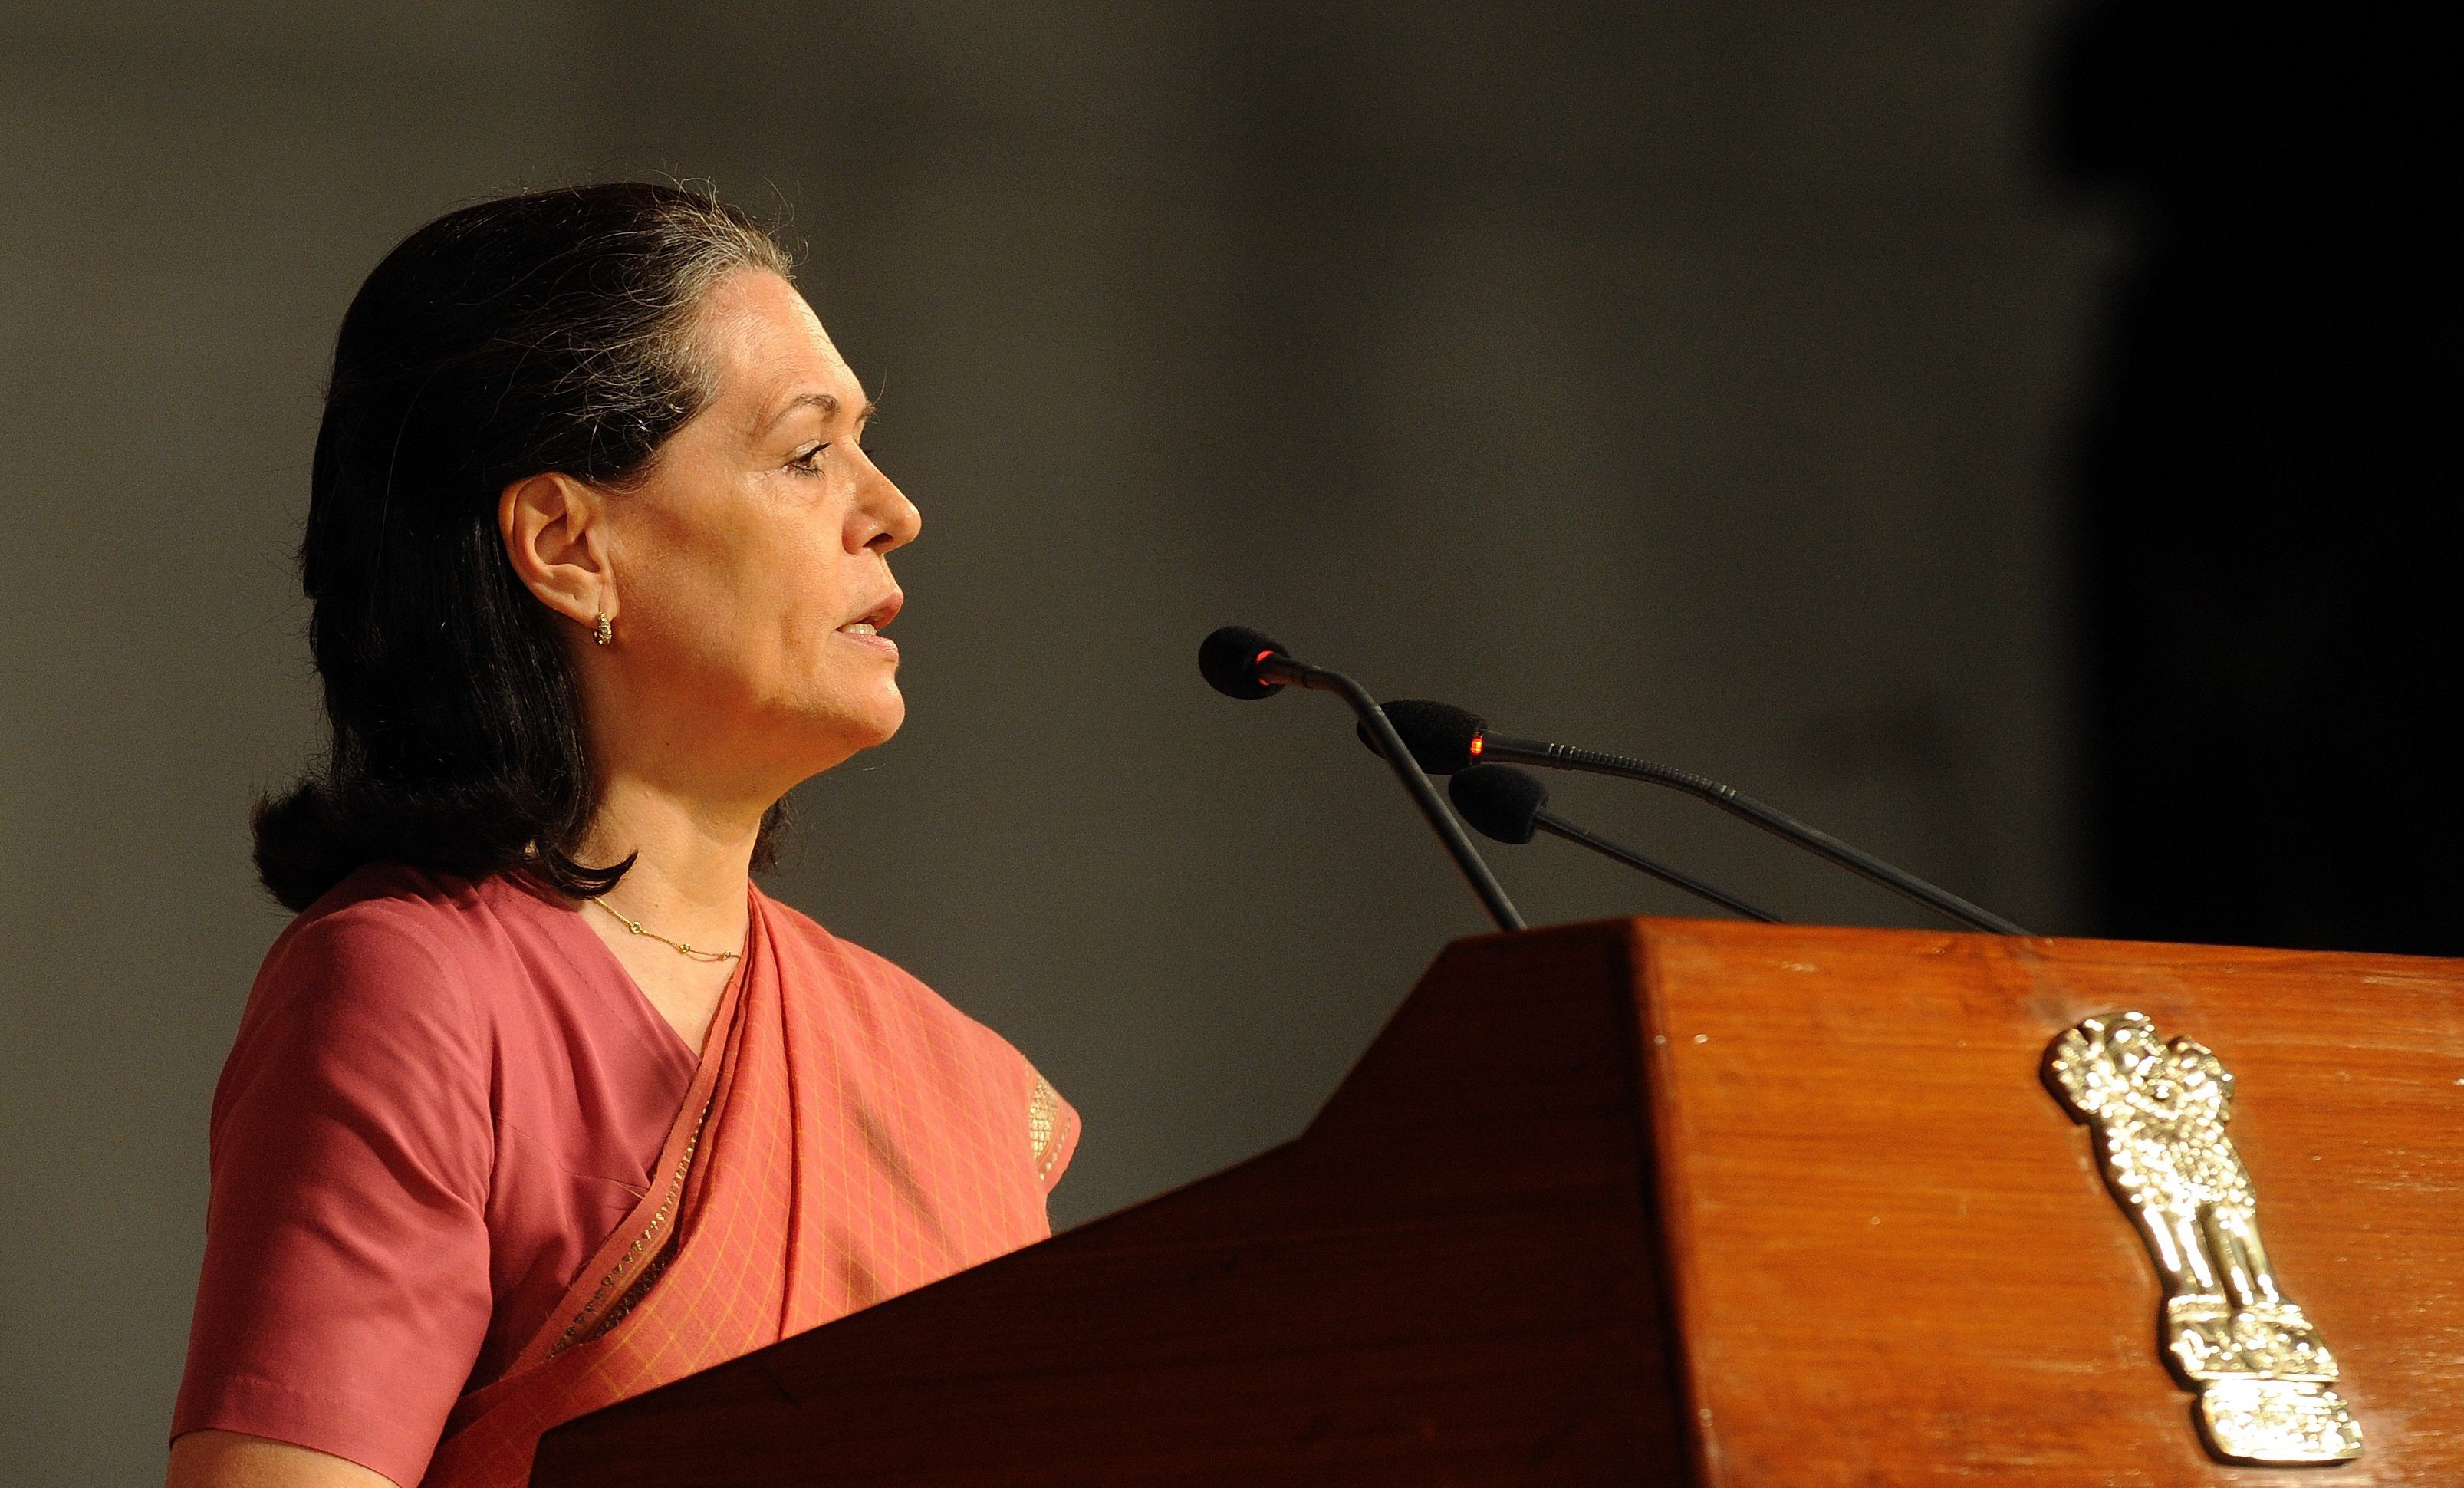 hindus muslims do not fight on their own they are made to fight sonia gandhi